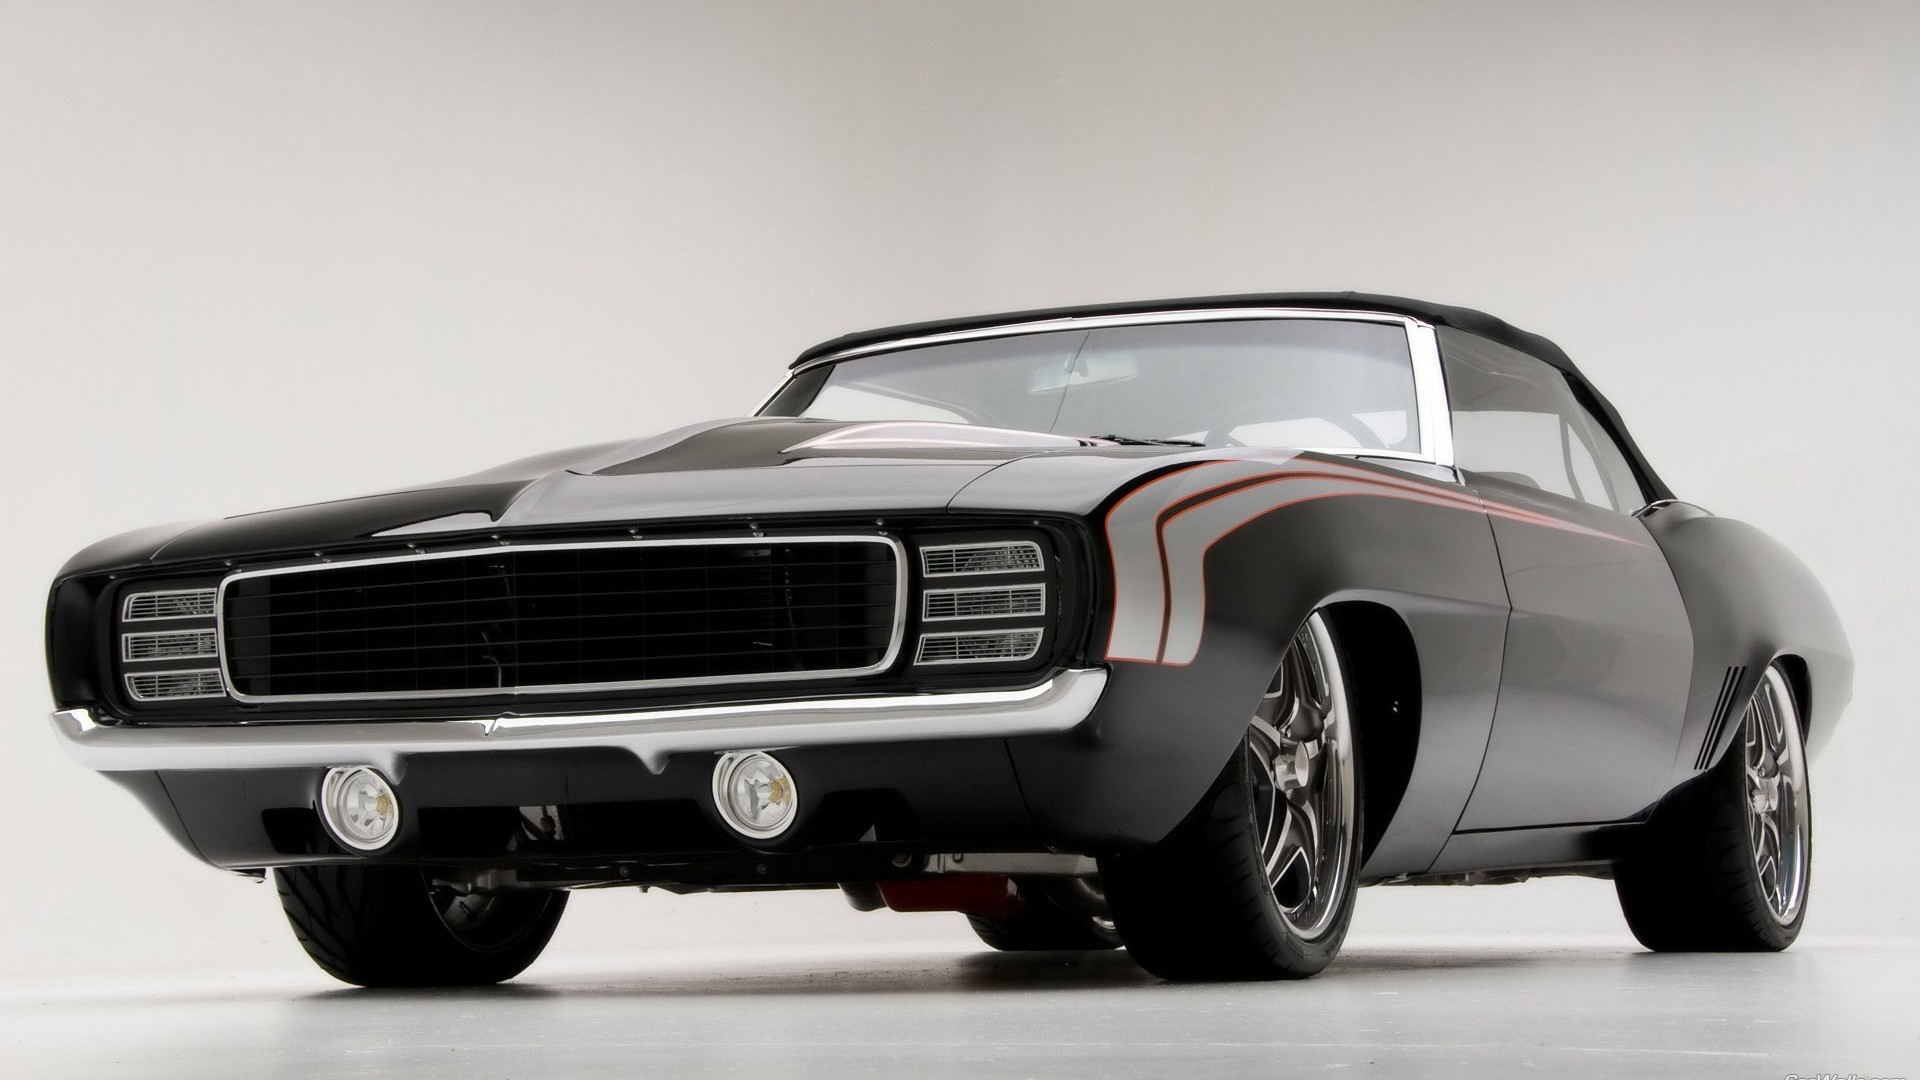 Cars Wallpapers: Muscle Cars In 1920x1080 Wallpapers (65+ Images